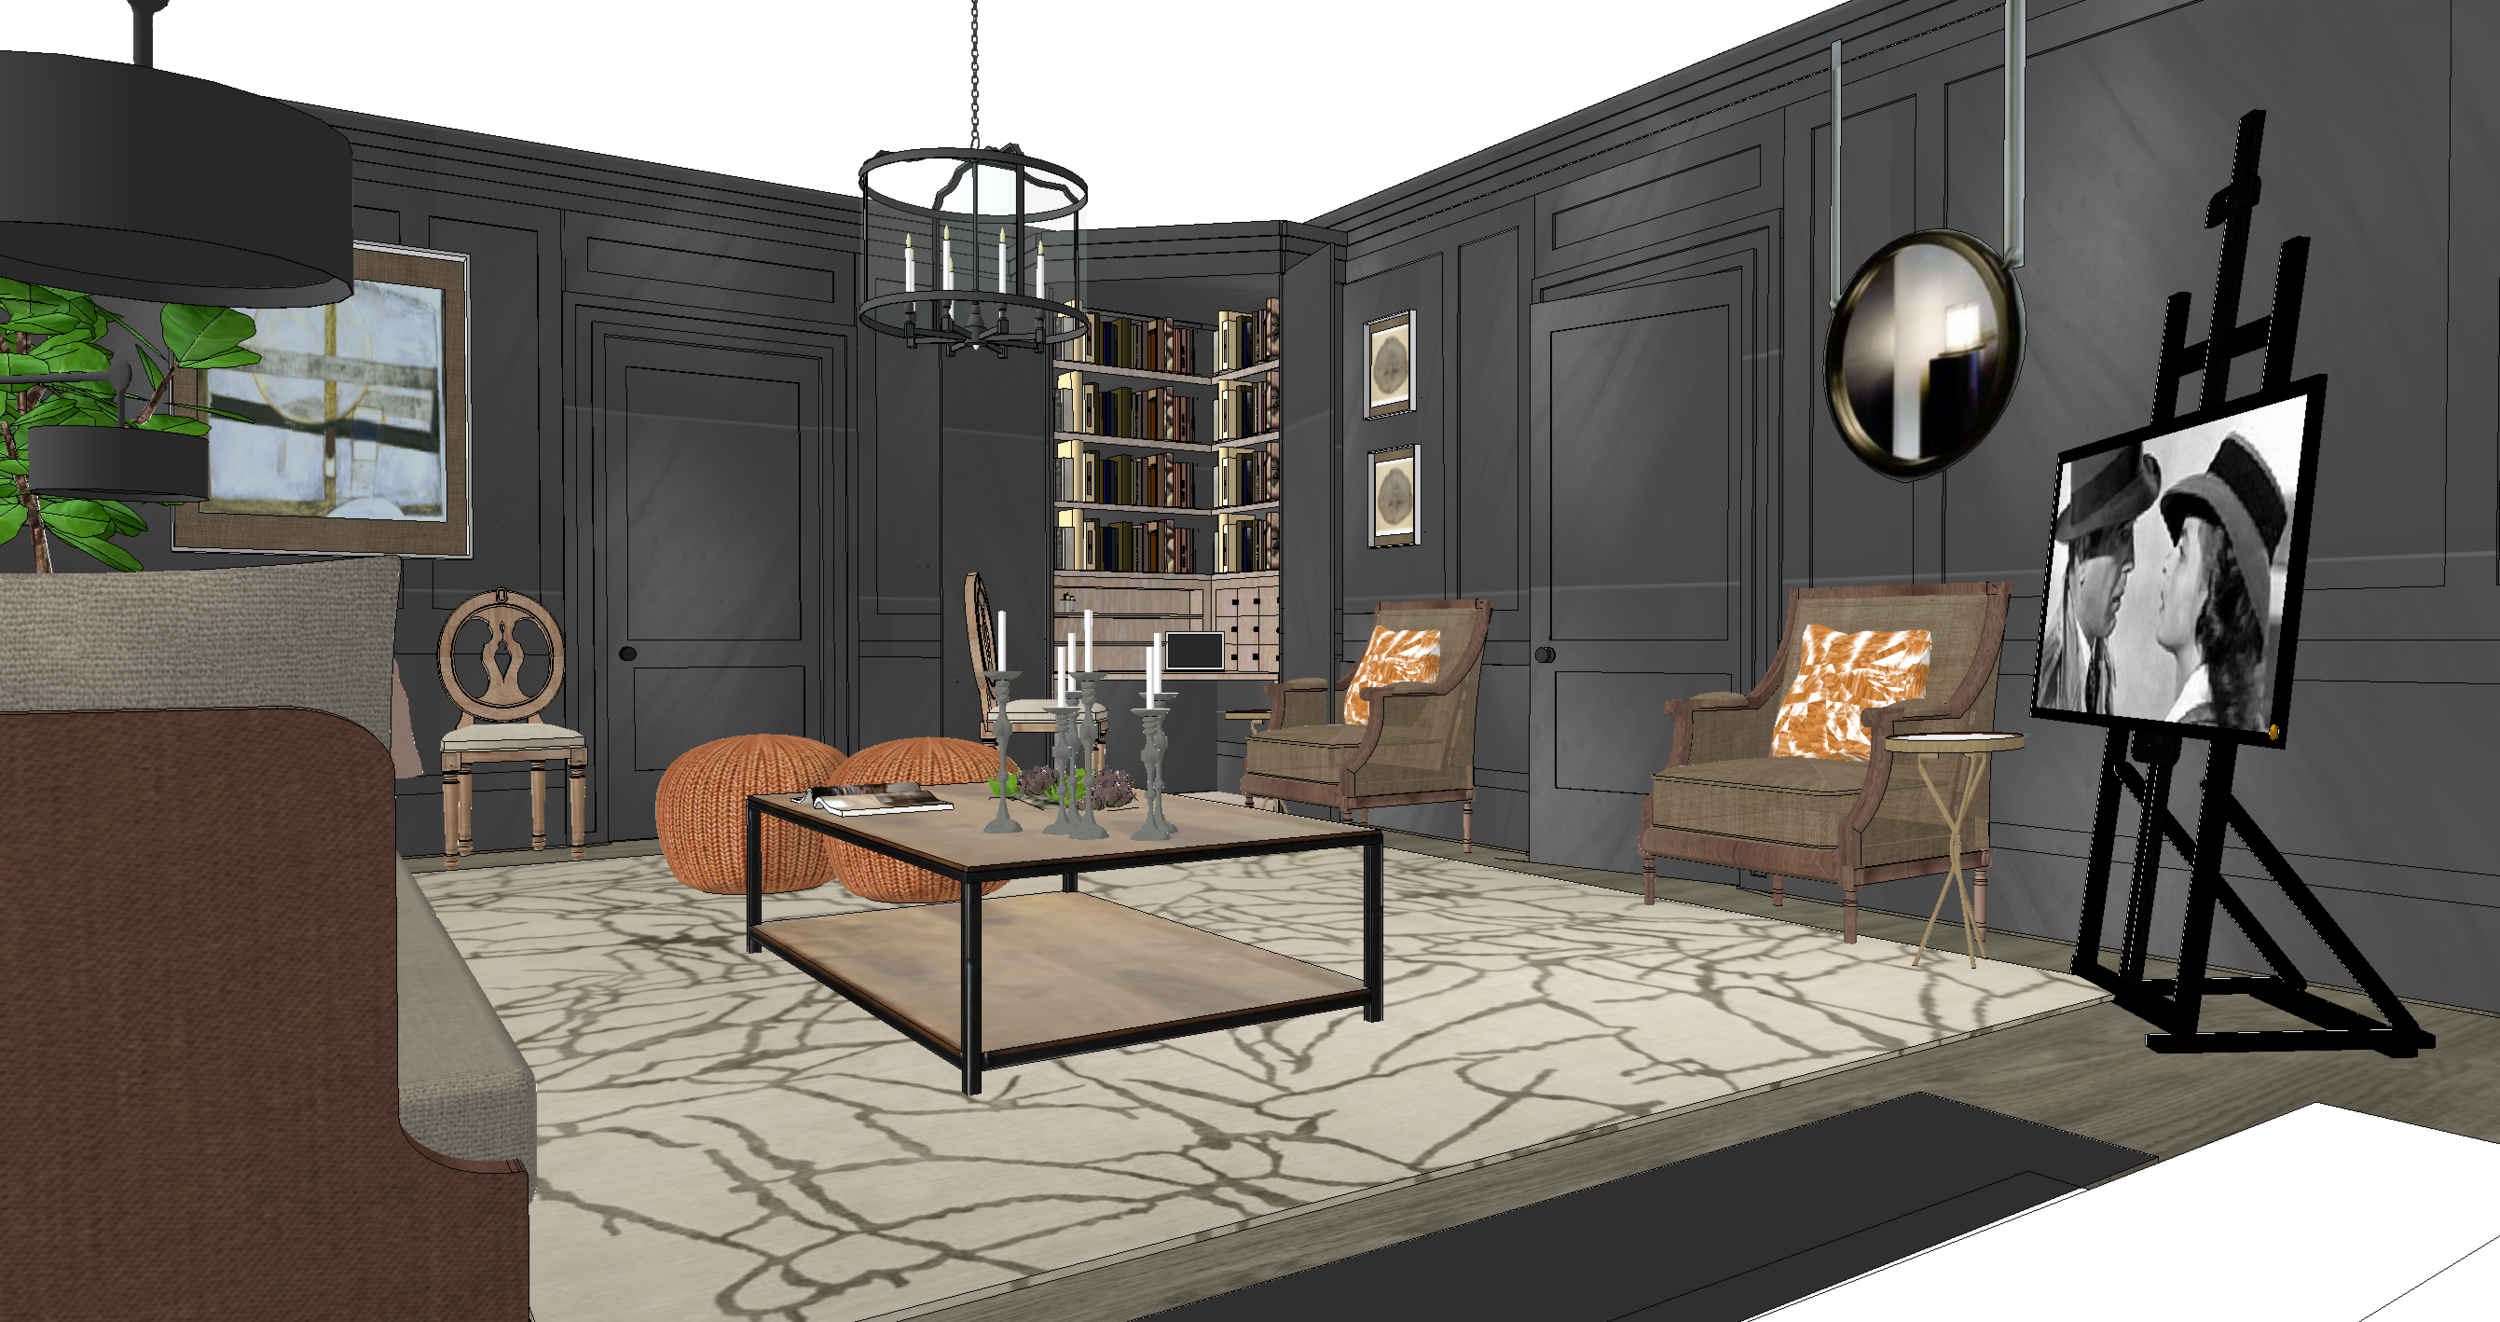 Example 3D visual for sitting room, showing proposed furnishings.